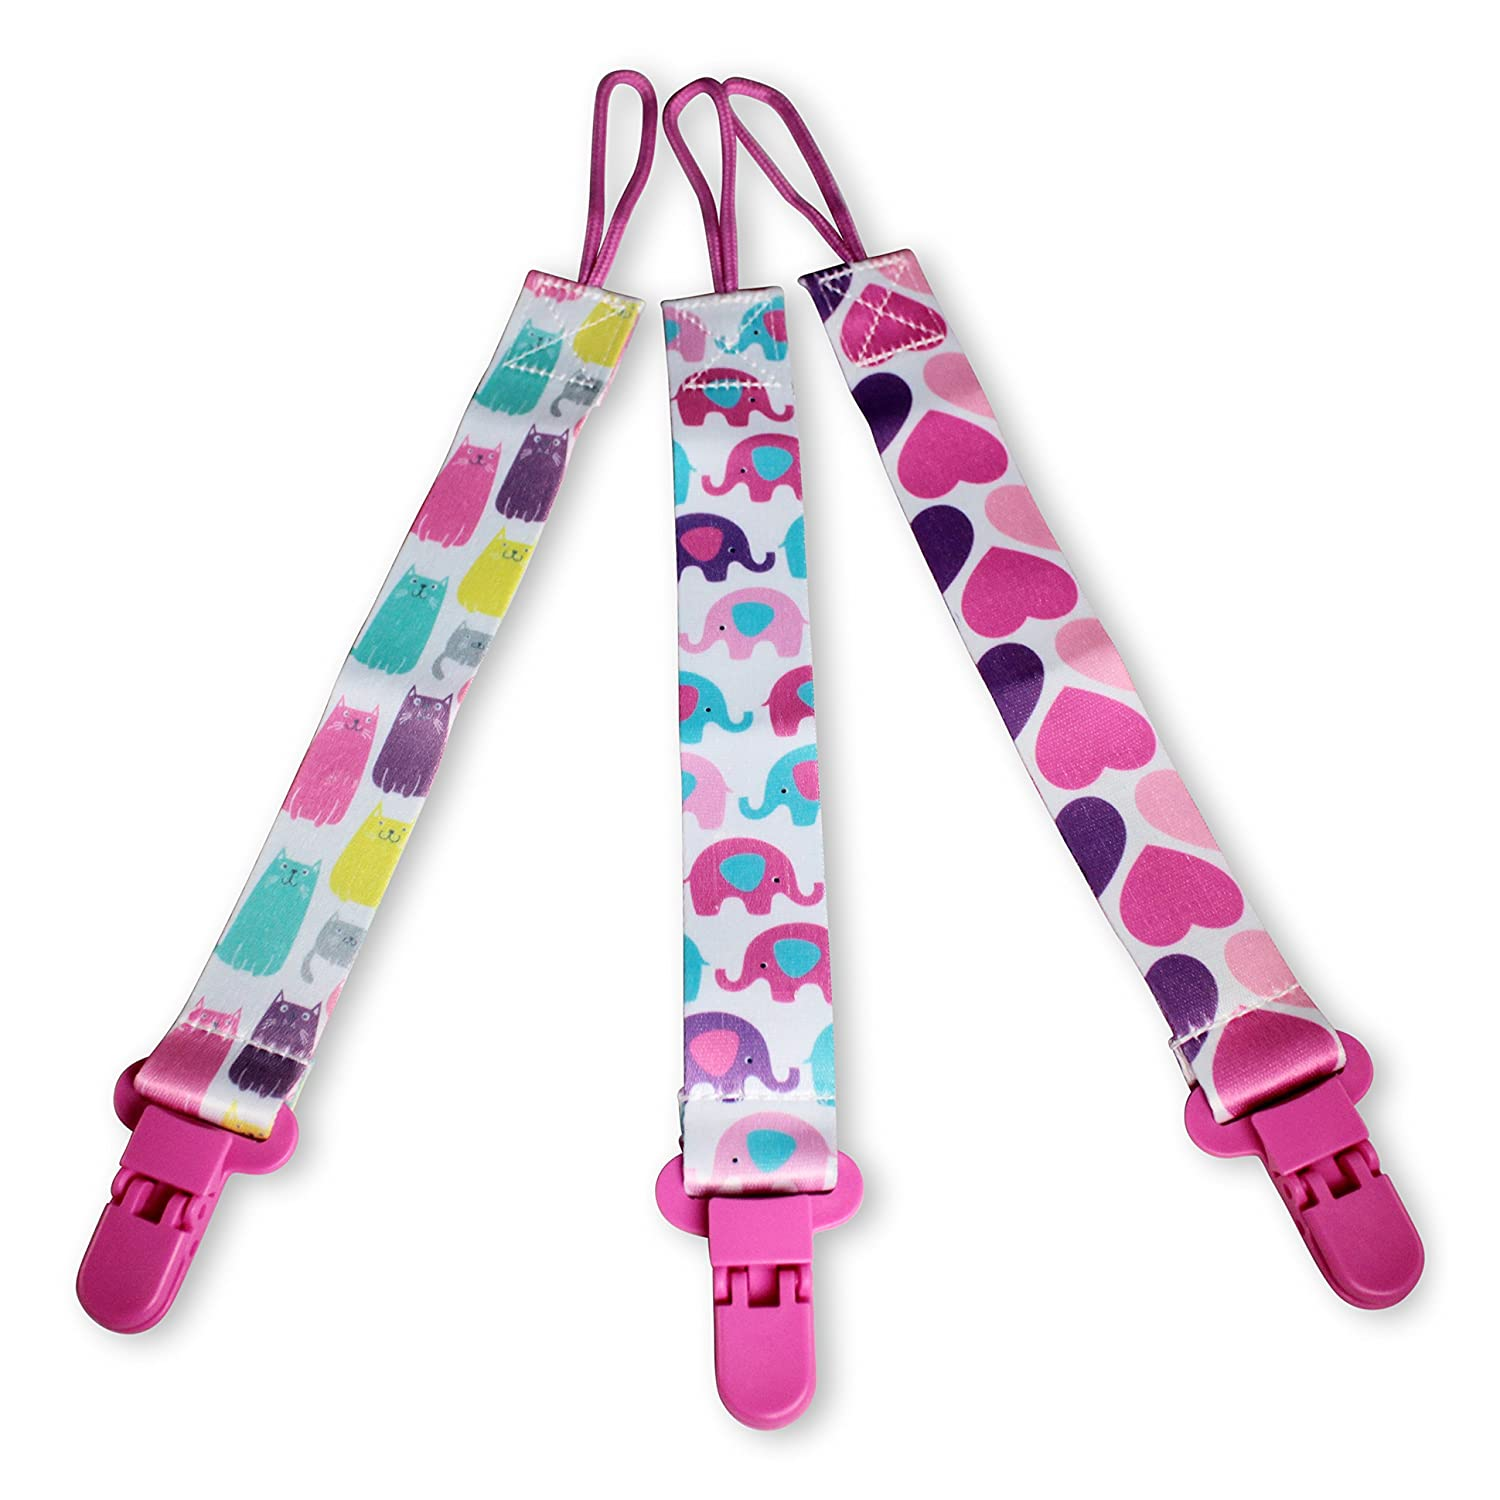 Dummy Clips by Amami 3 Pack Dummy Holder for Boys and Girls BPA-Free Fits All Soothers & Pacifiers Colourful Design Washable Great Baby Gift Amafranca